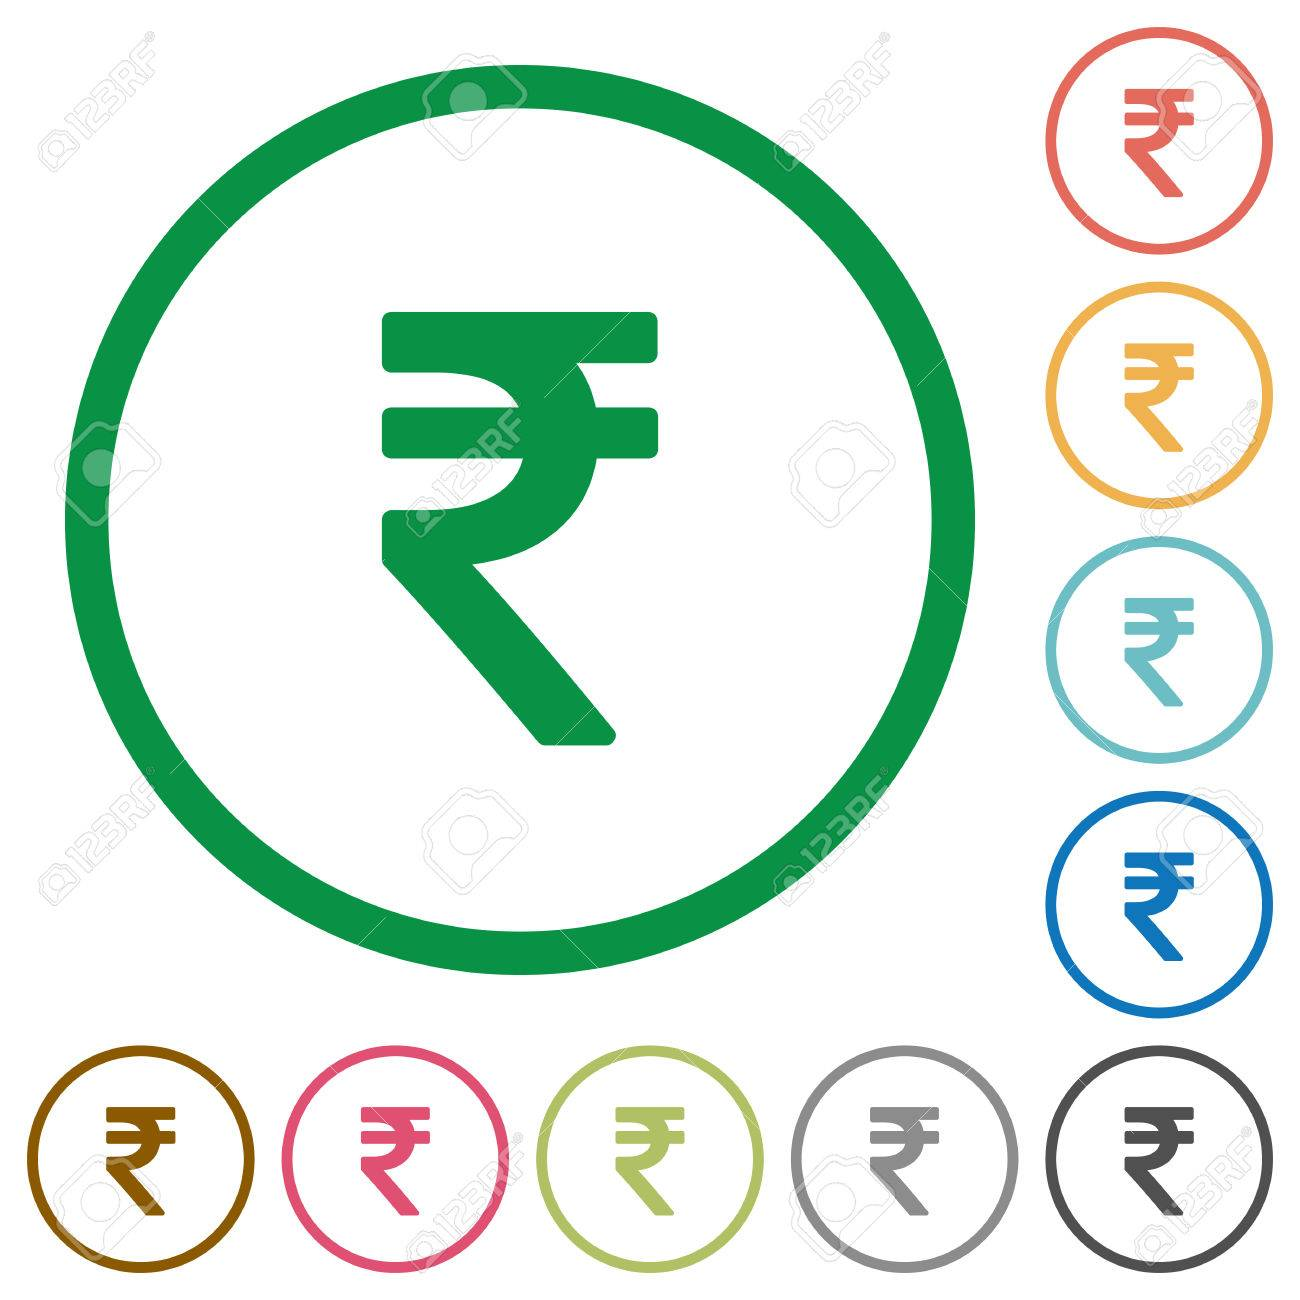 Set Of Indian Rupee Sign Color Round Outlined Flat Icons On White ...